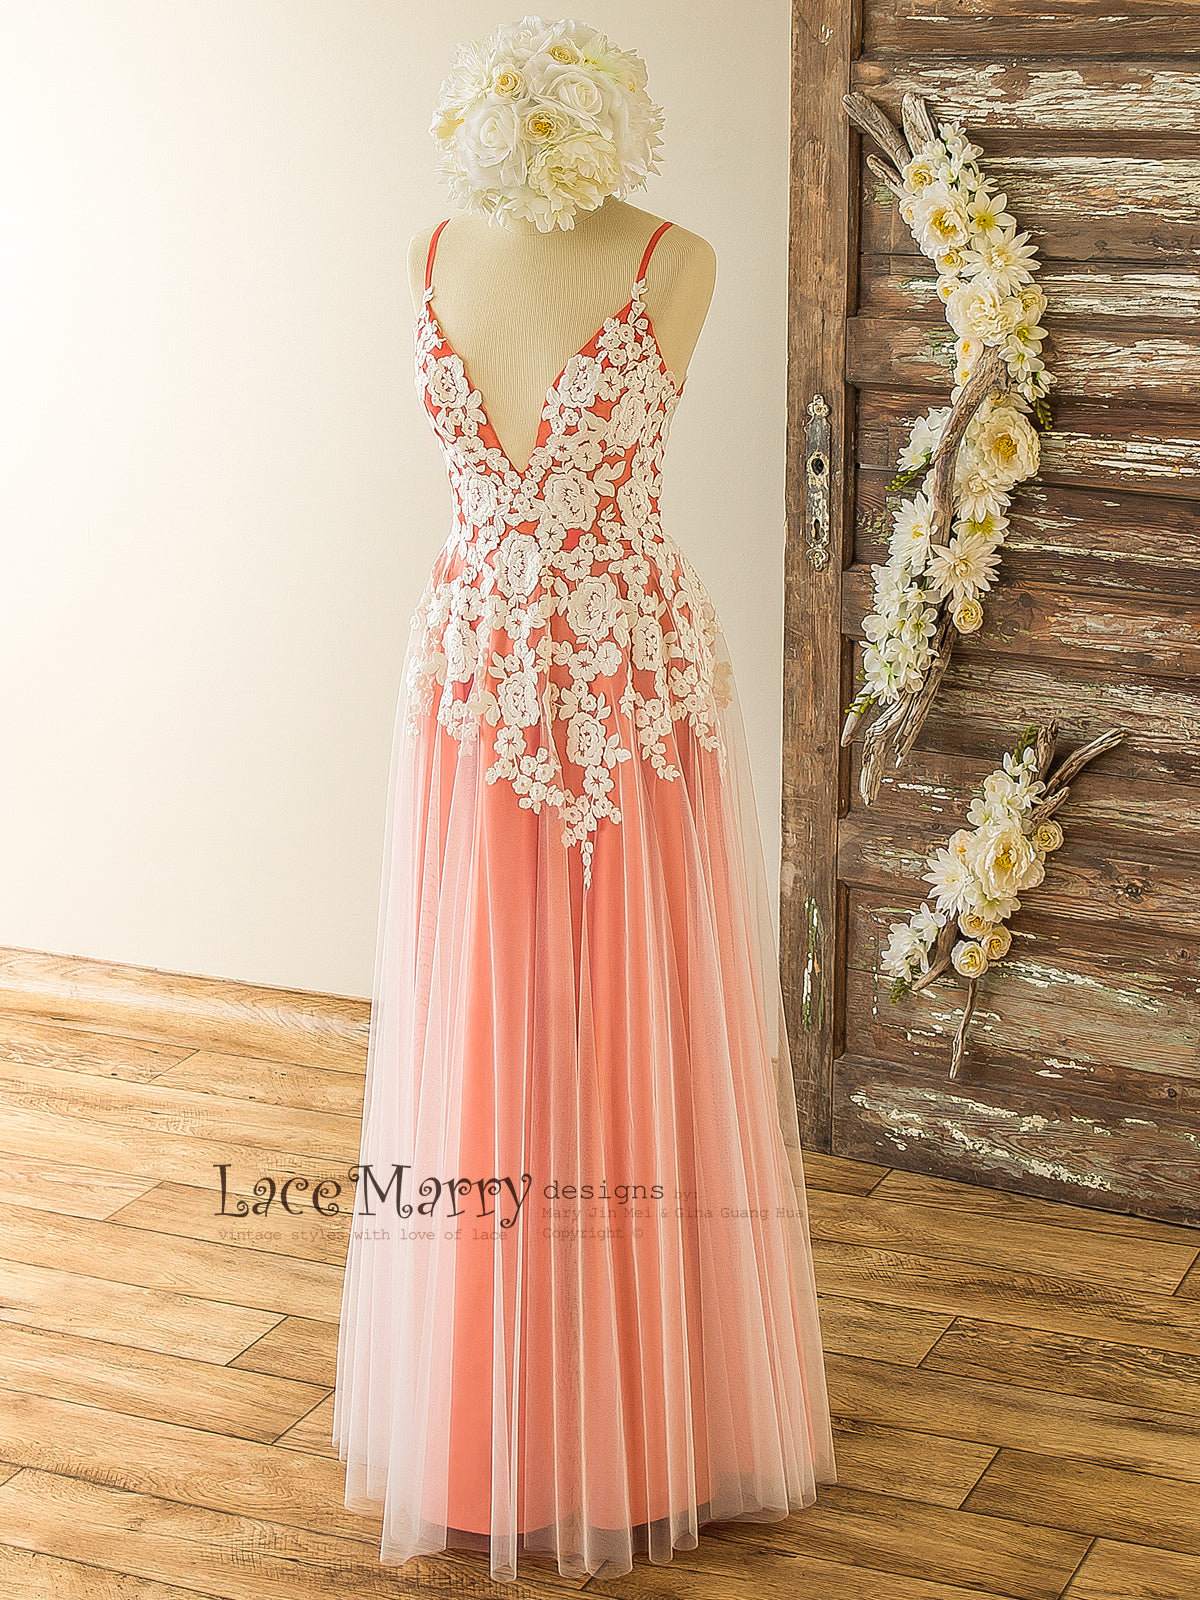 Stunning Colorful Bridesmaid Dress with Ivory Floral Design